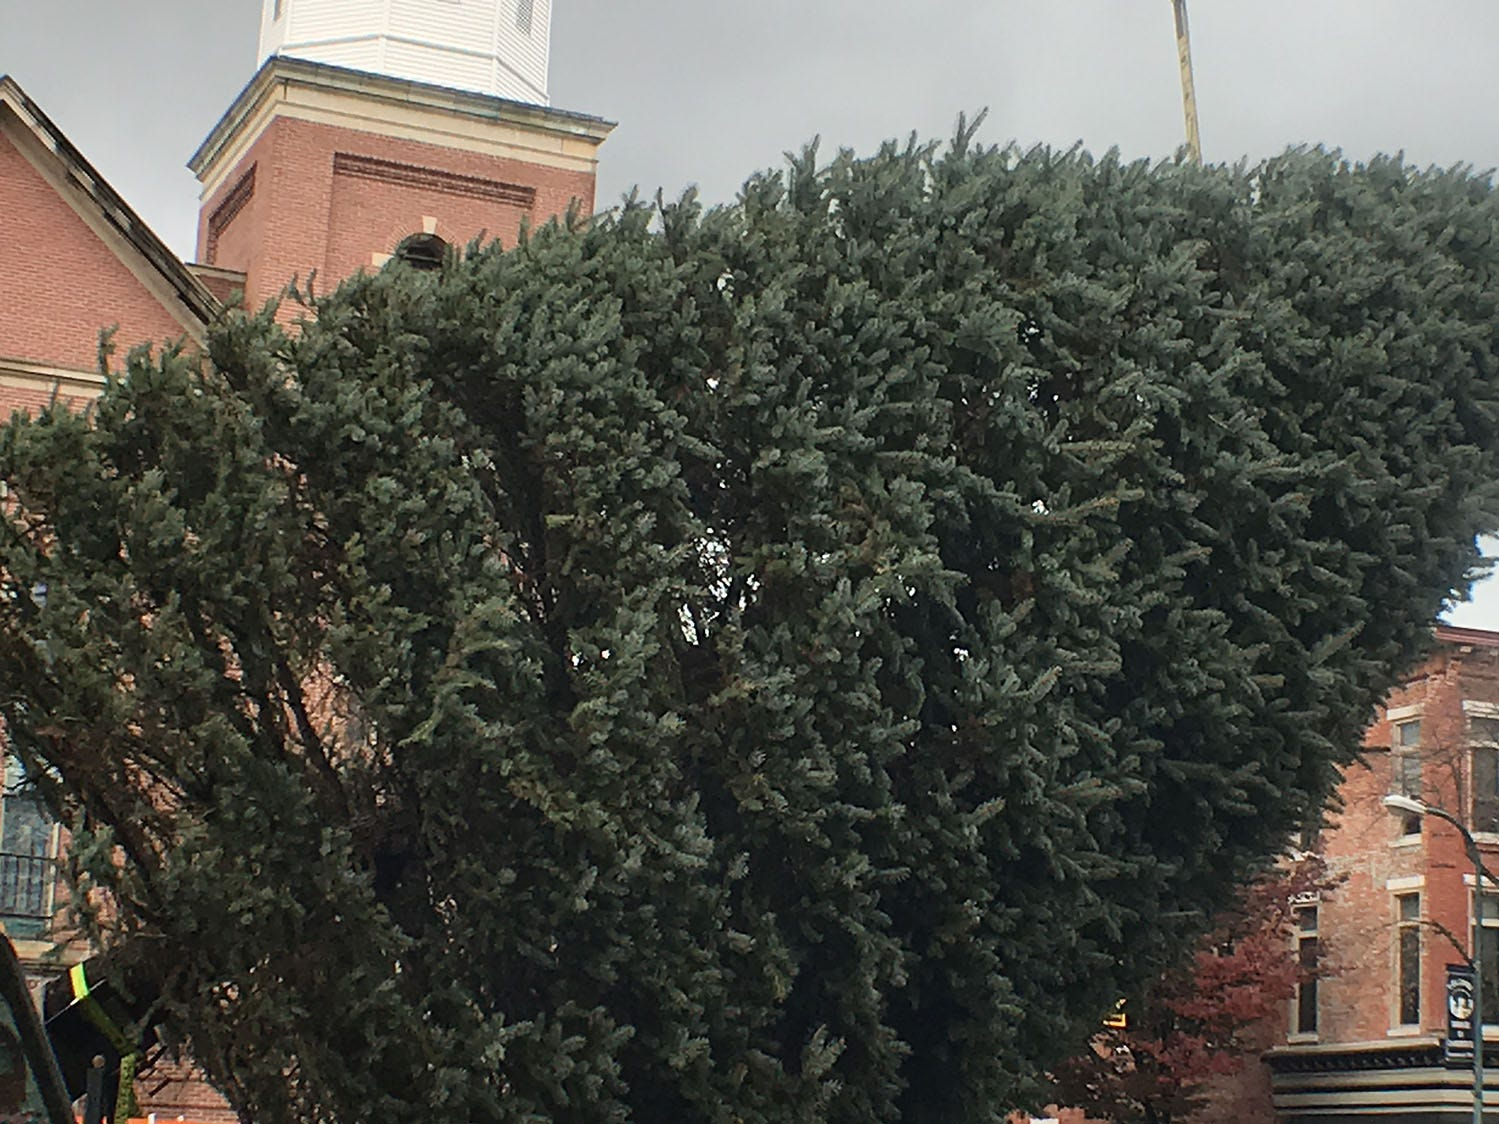 Borough of Chambersburg worker, with assistance from Cumberland Valley Tree Service, installed a 20 foot blue spruce Christmas tree on the southeast corner of Memorial Square on Tuesday morning, November 13, 2018.